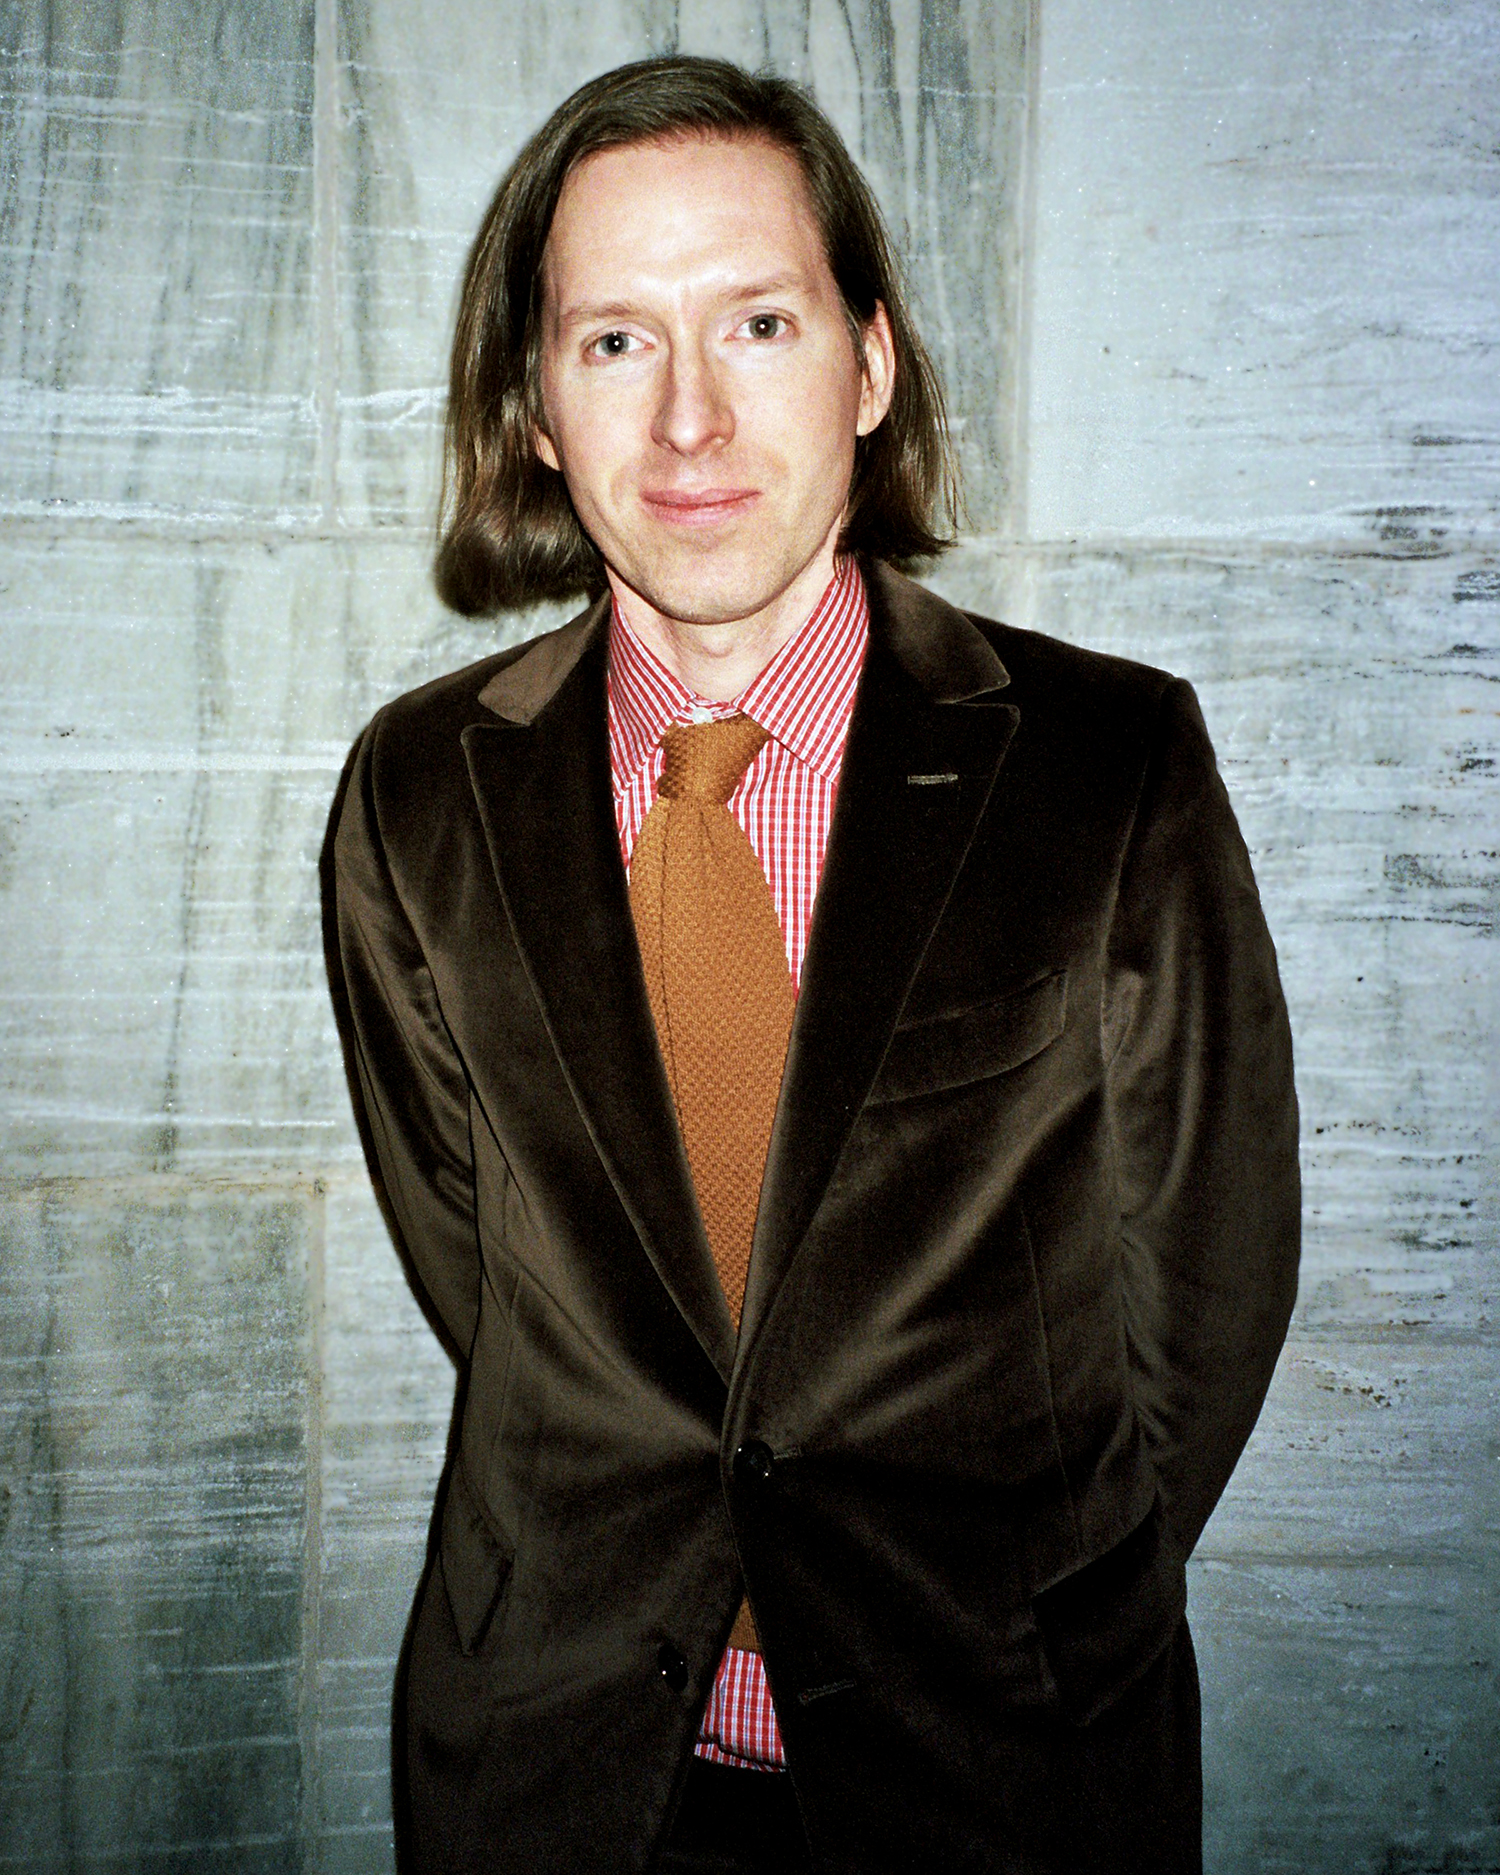 Wes-Anderson-by-Weston-Wells.jpg